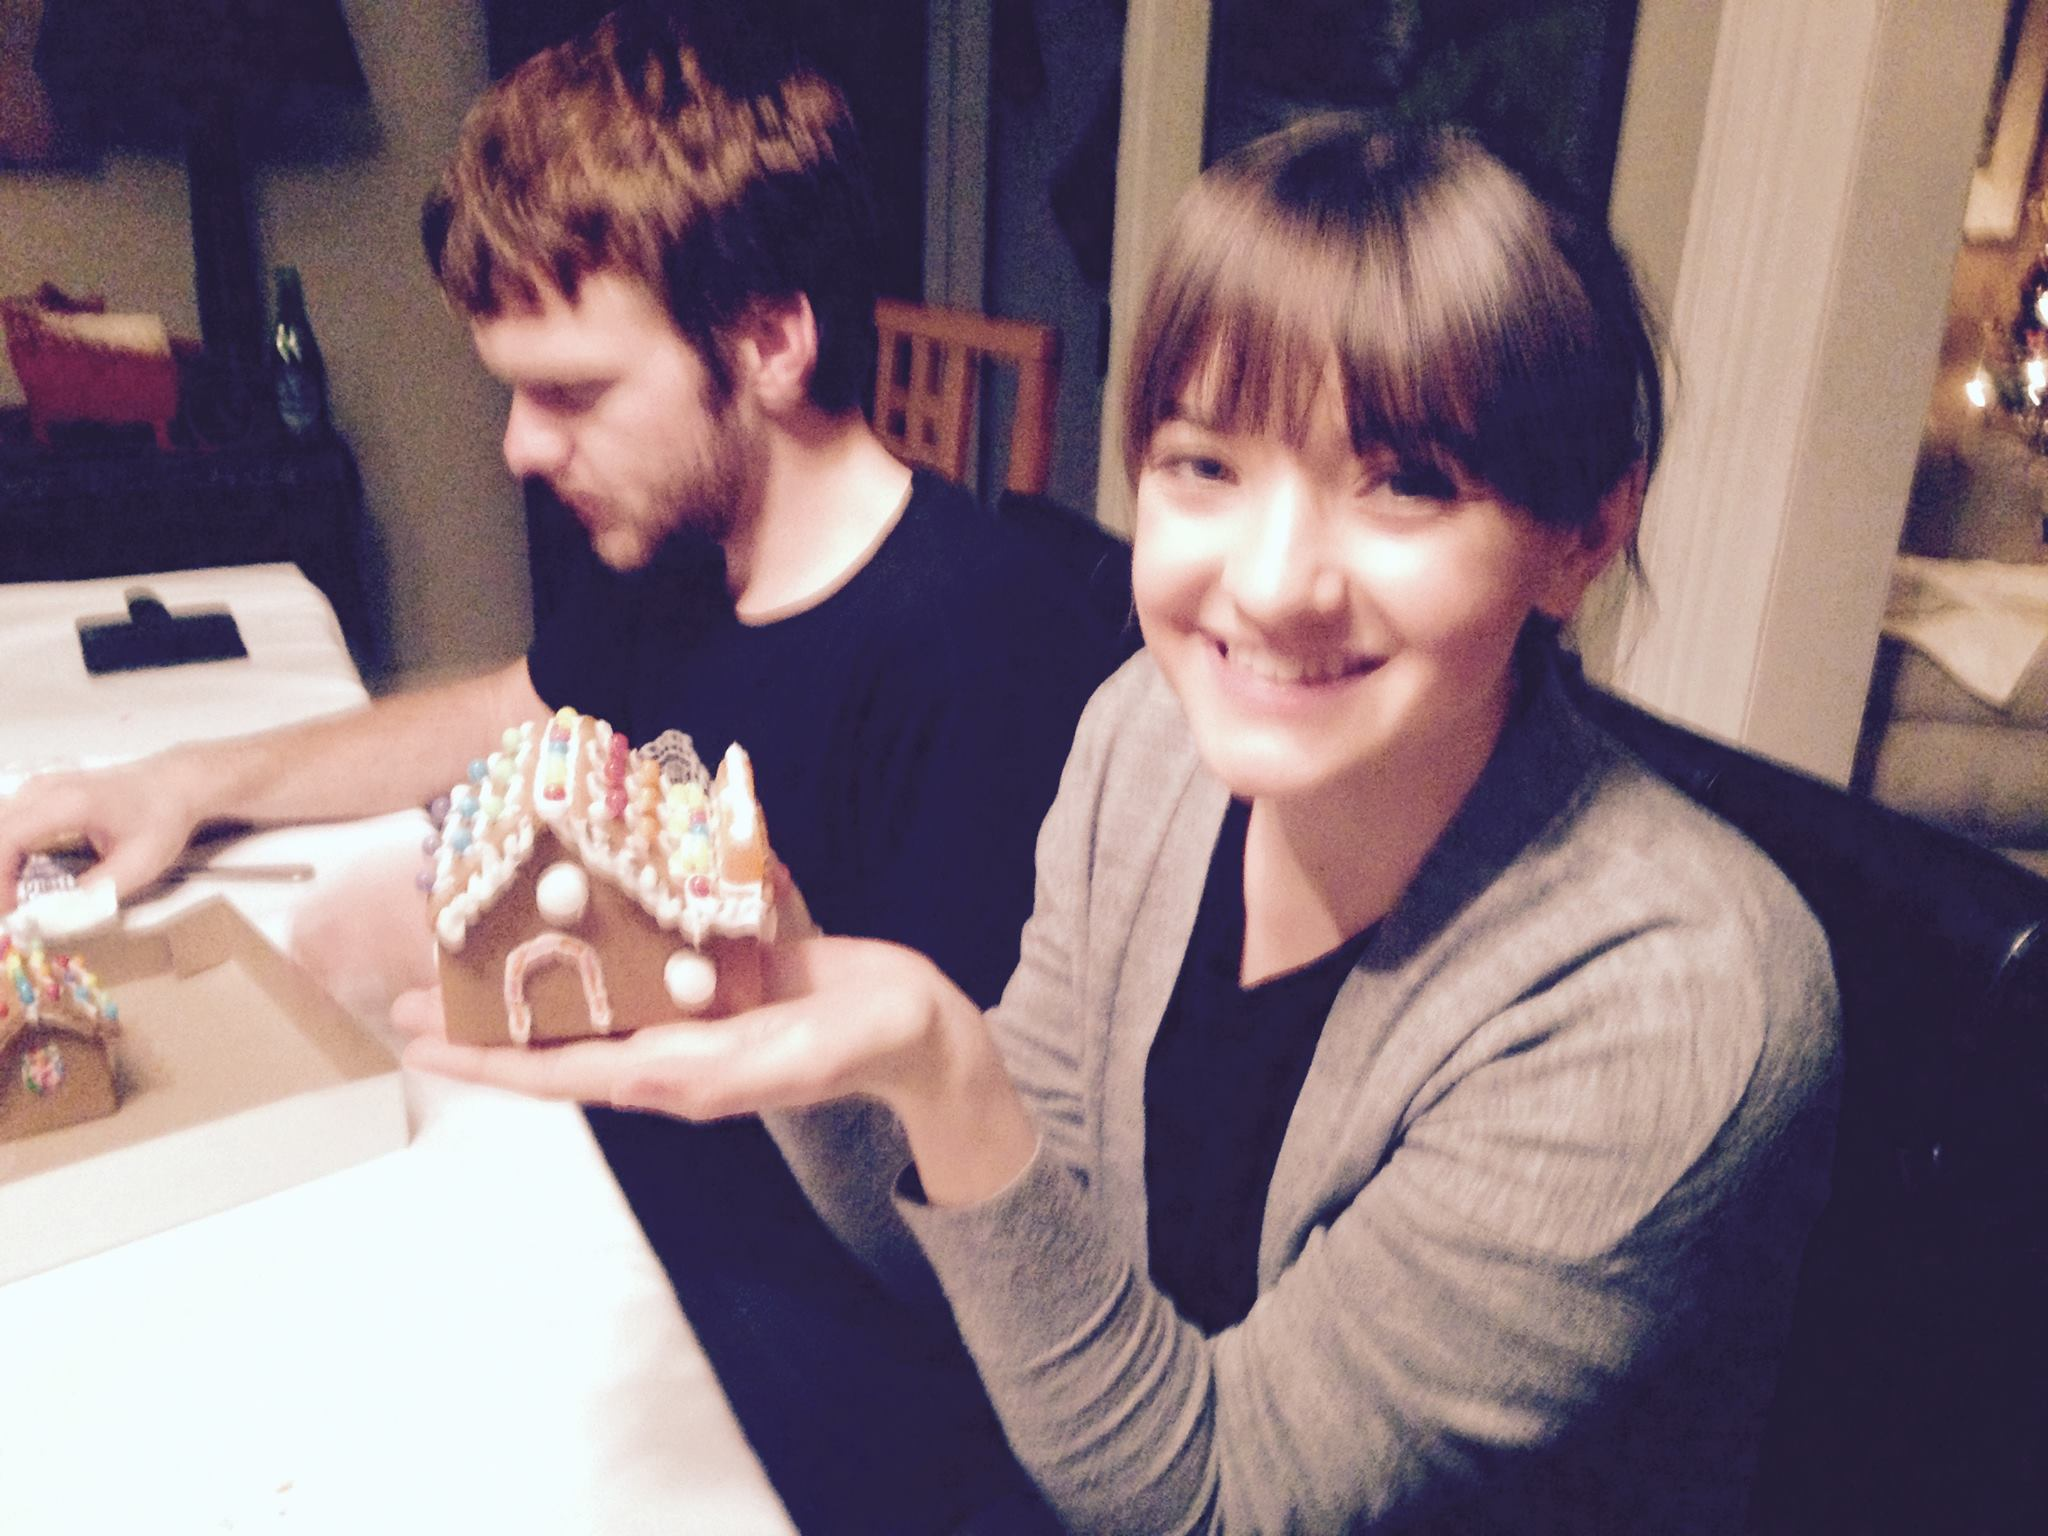 Madeline Peters and Colin Bonner working on their gingerbread houses at the 2016 lab holiday party.